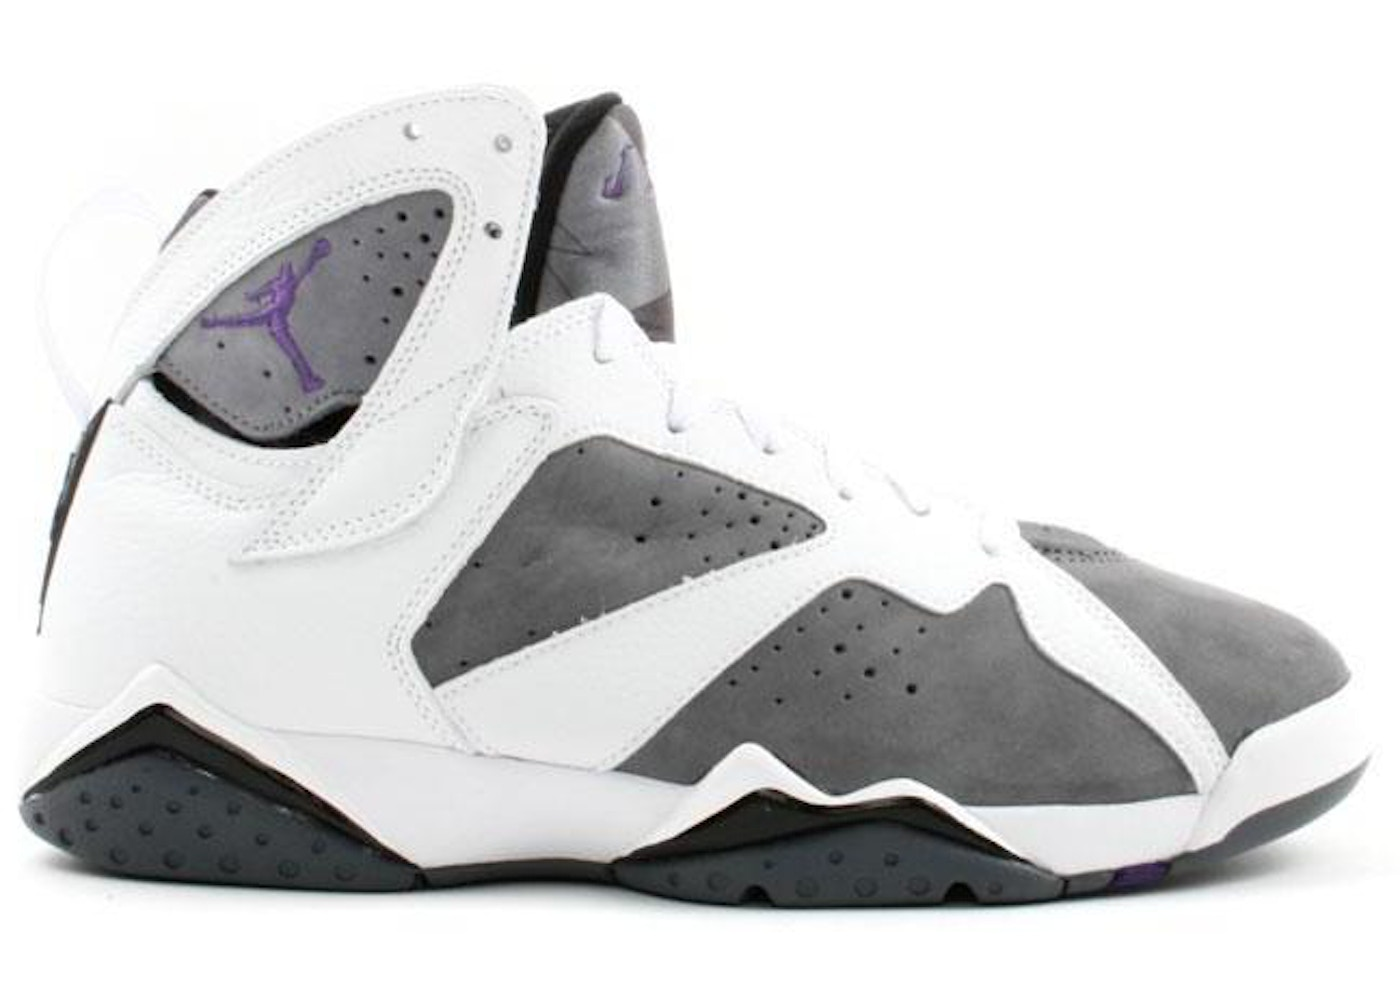 reputable site 89a73 ef0e1 Jordan 7 Retro Flint